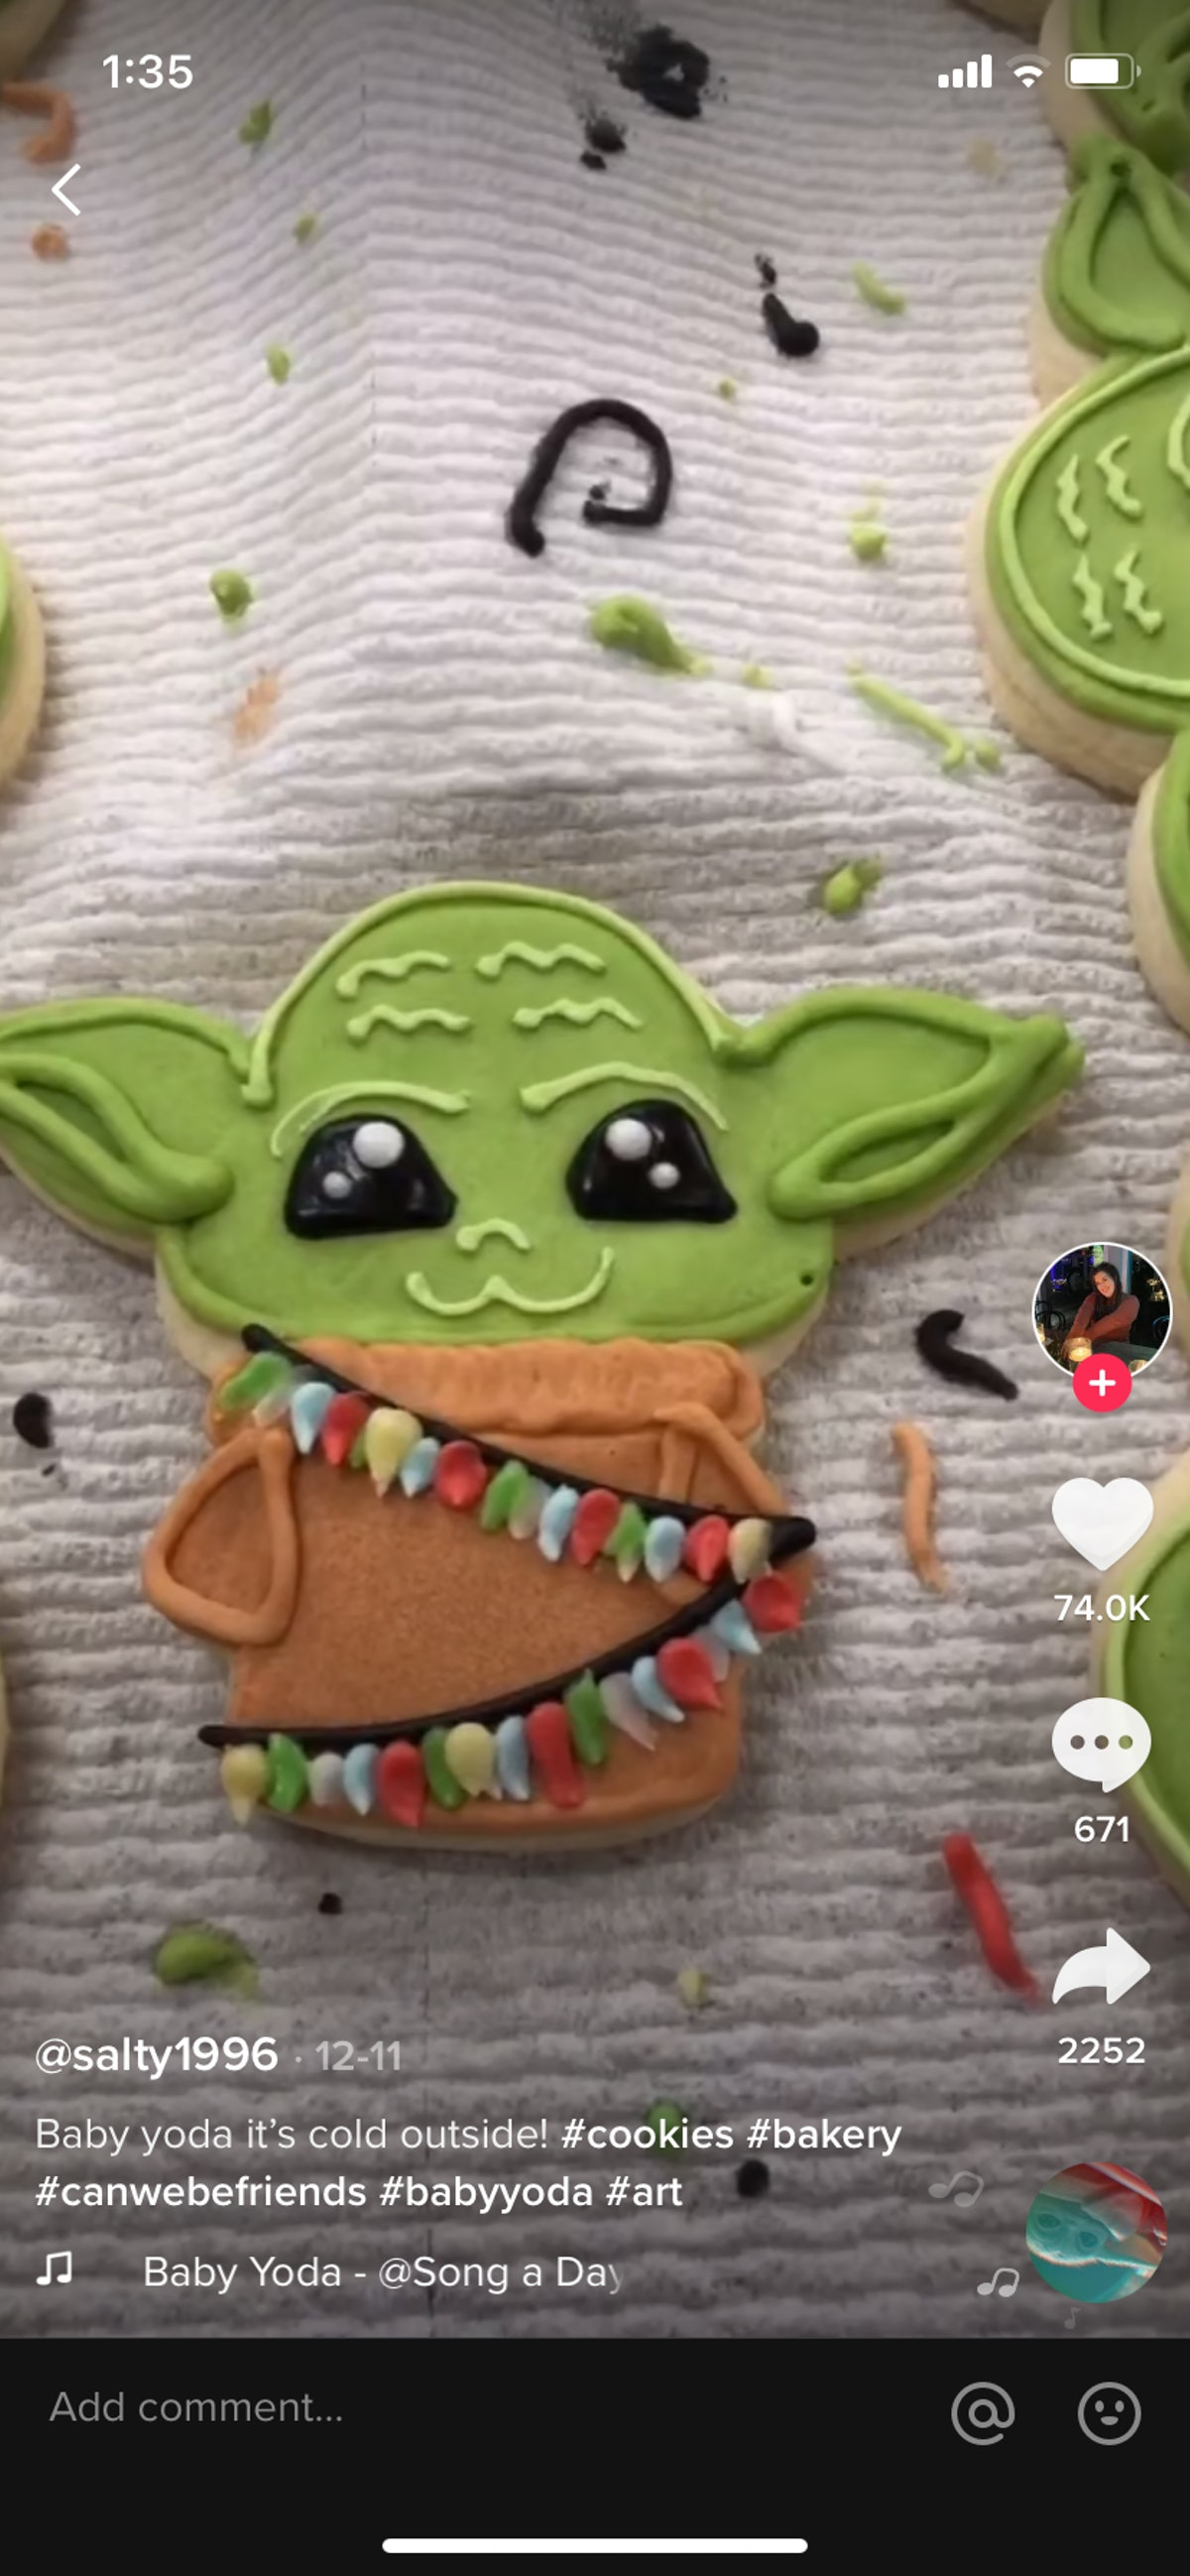 A TikTok user decorates a Baby Yoda cookie with layers of frosting.